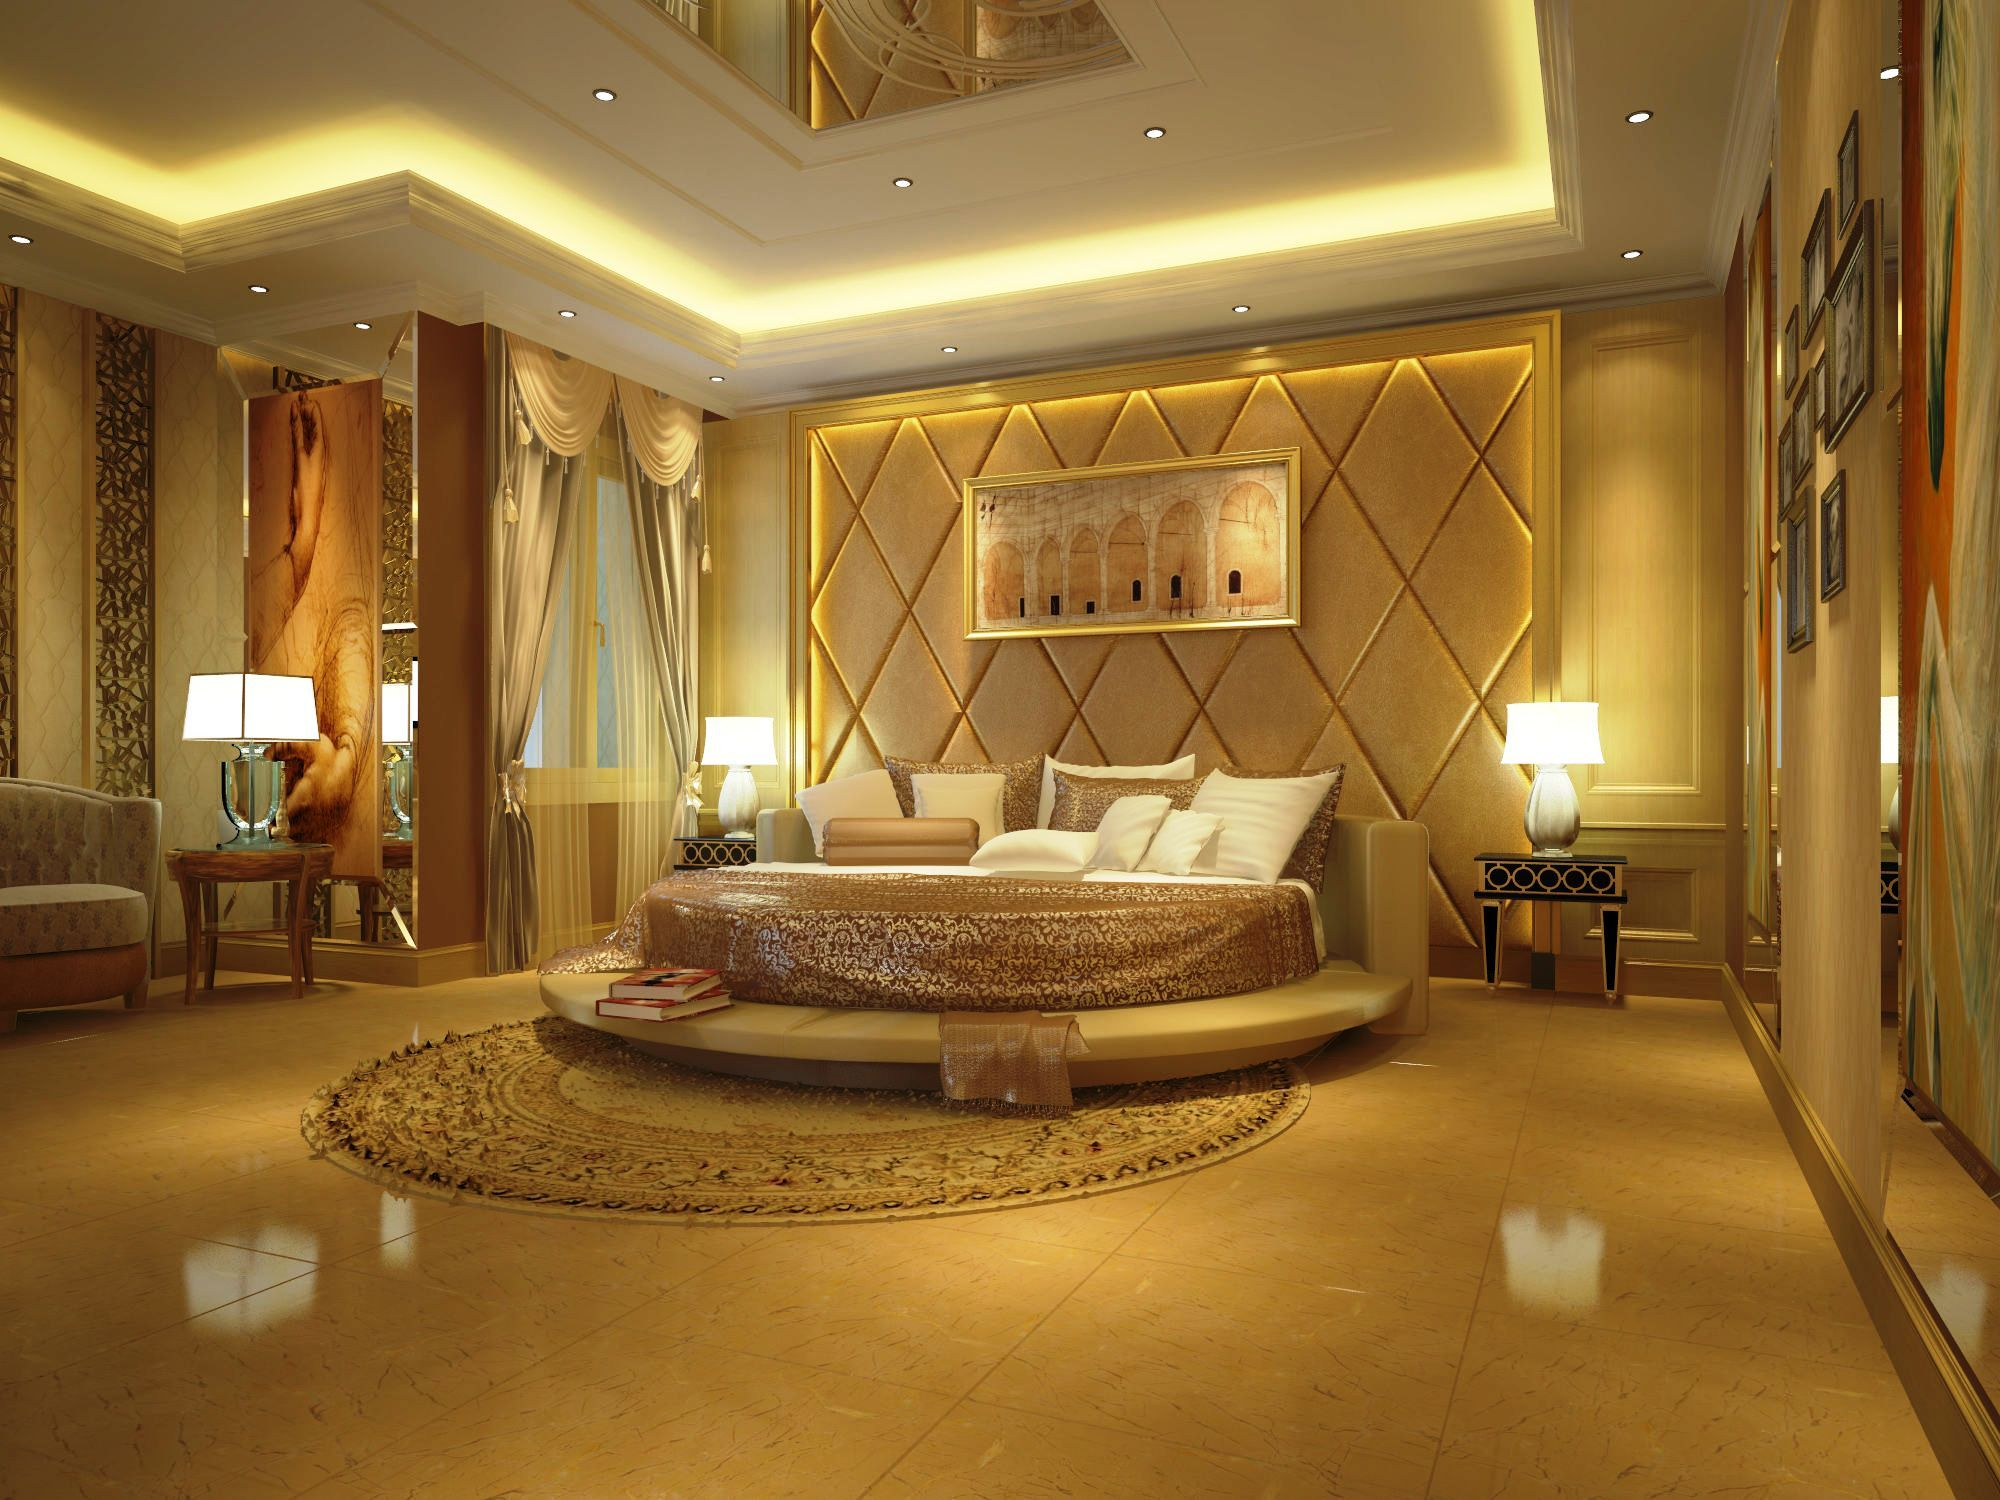 Luxury Bedrooms Interior Design Impressive A Master Bedroom Fit For A King & Queendescription From Design Inspiration